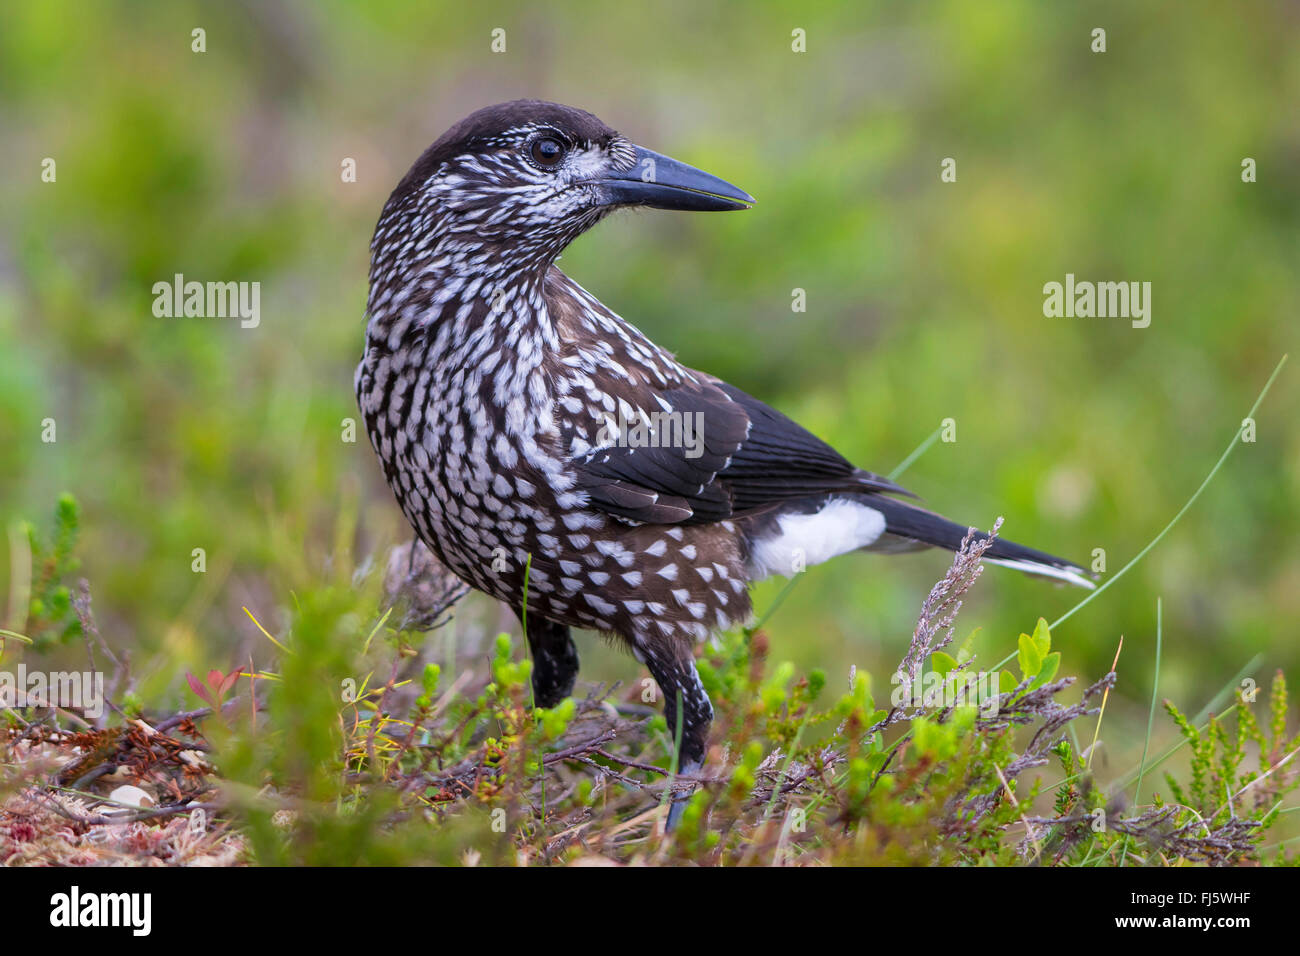 spotted nutcracker (Nucifraga caryocatactes), on the feed on the ground, Norway, Trondheim - Stock Image